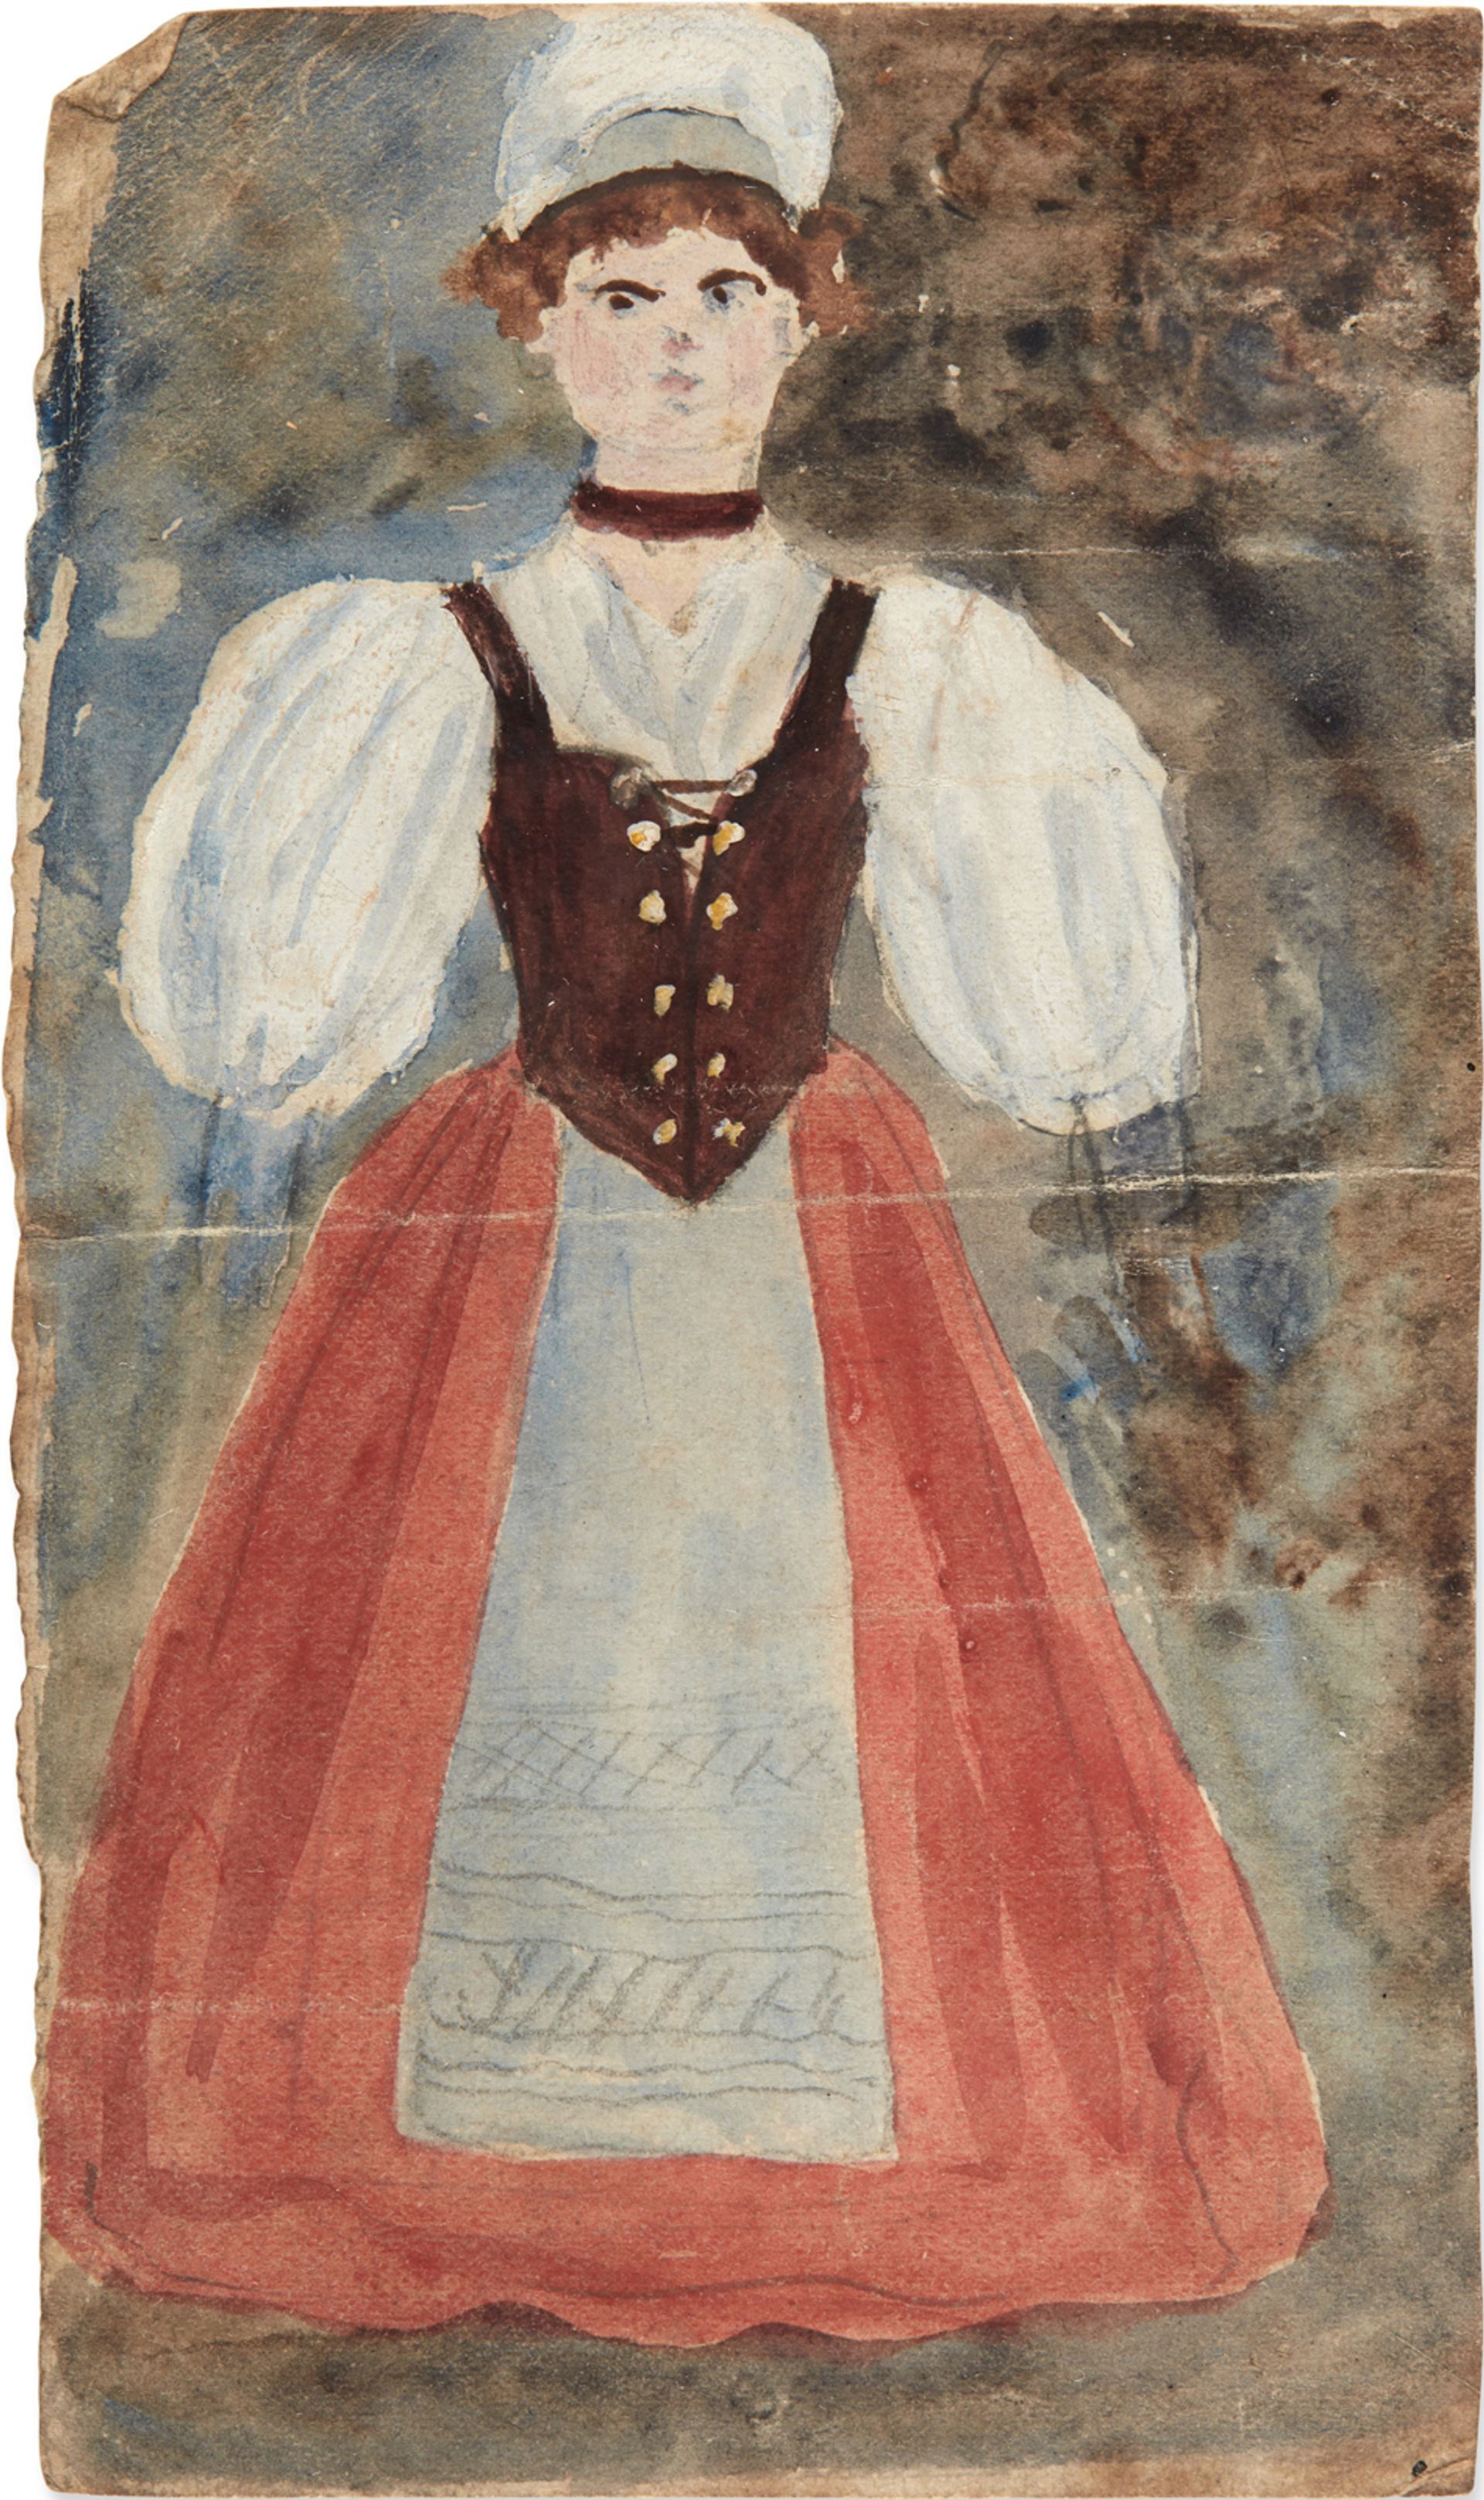 Charlotte Brontë Juvenile watercolour portrait of a Glass Town peasant woman (around 1828) Image: courtesy of Sotheby's